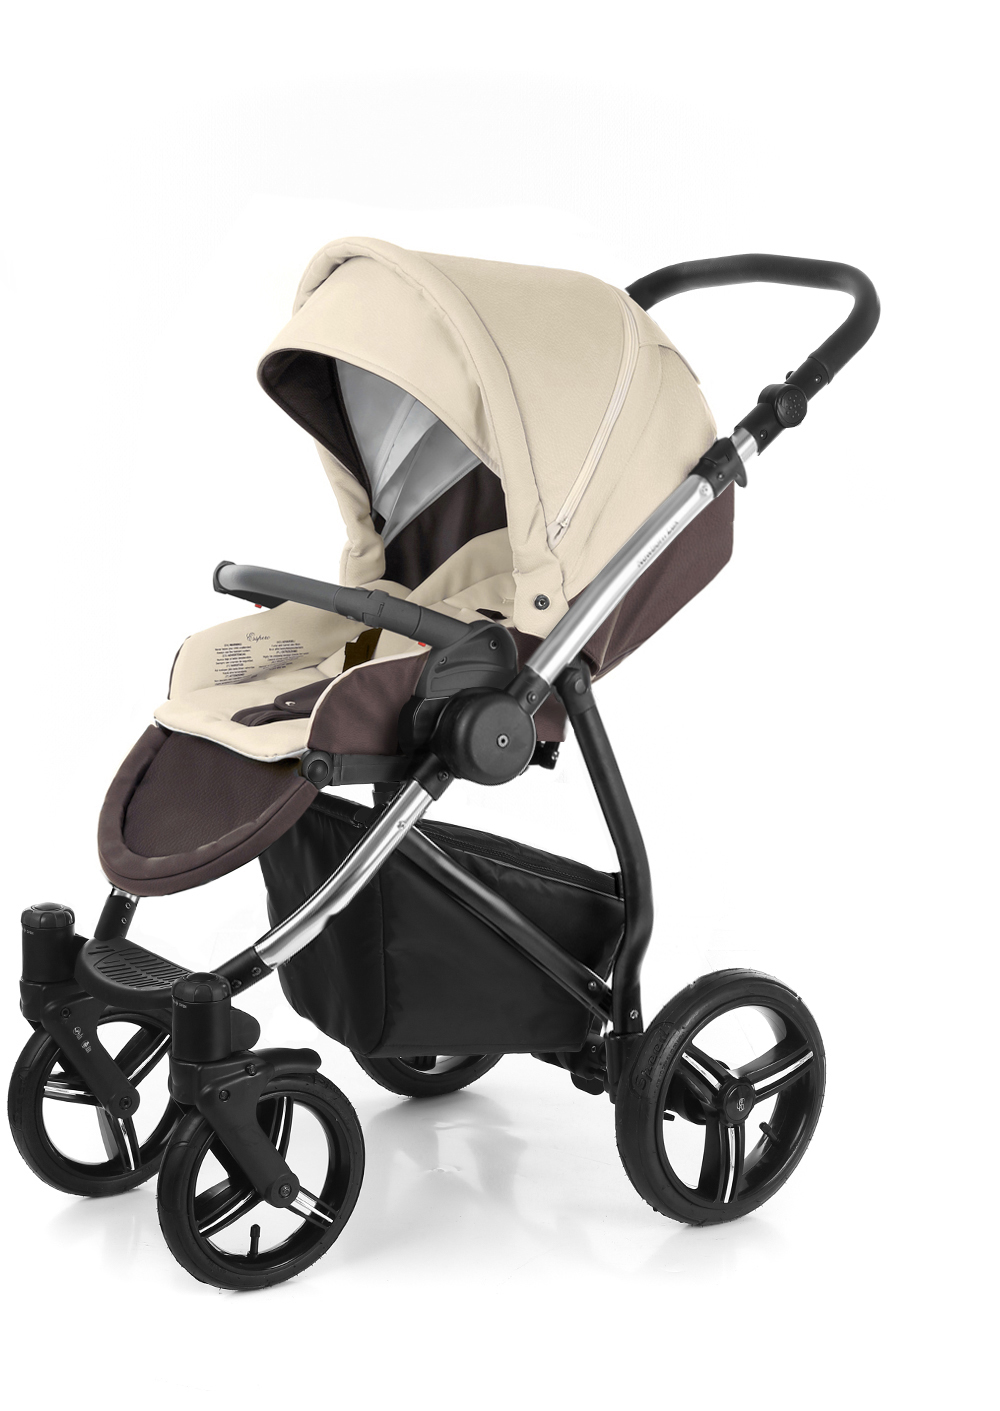 Прогулочная коляска Esspero Grand Newborn Lux (шасси Chrome) Cream leatherette